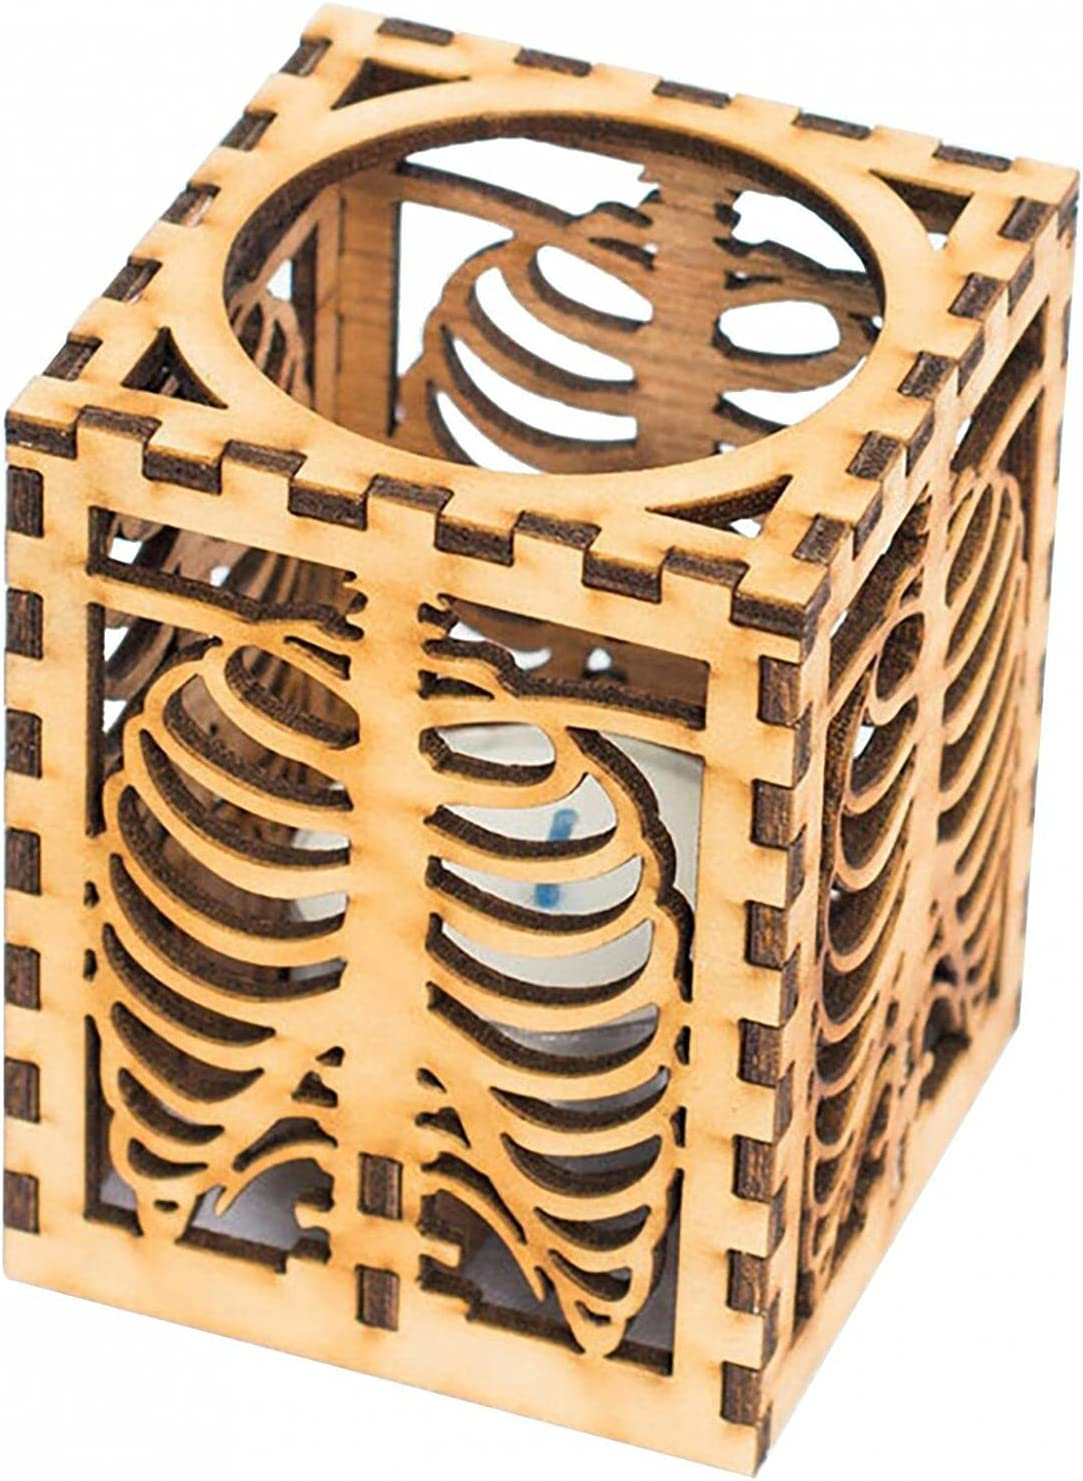 Kairaley Halloween All items free shipping Wooden Max 80% OFF Skeleton Rib Shadow Lamp Hal Desk